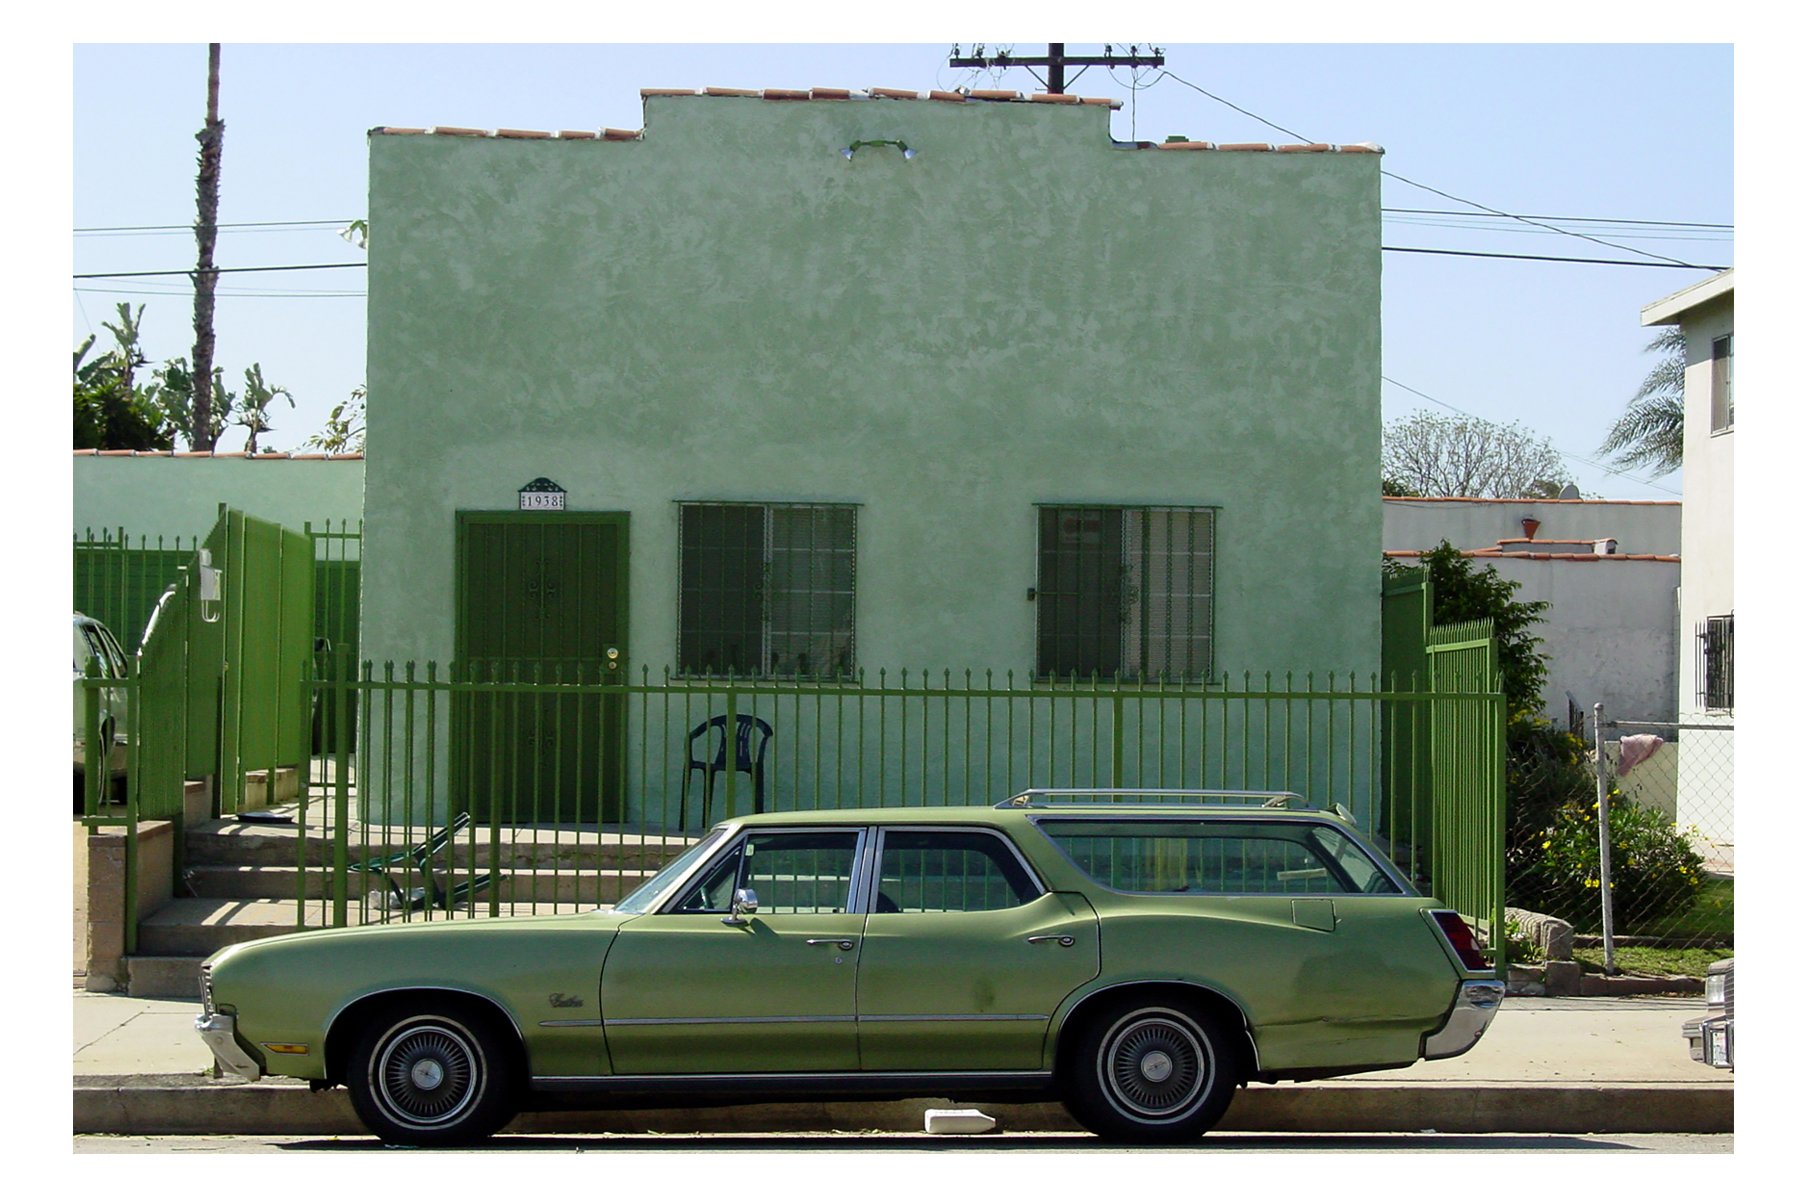 """Vincent Johnson. The Green Coincidence, 2002. Digital Photography, 13""""x19"""""""